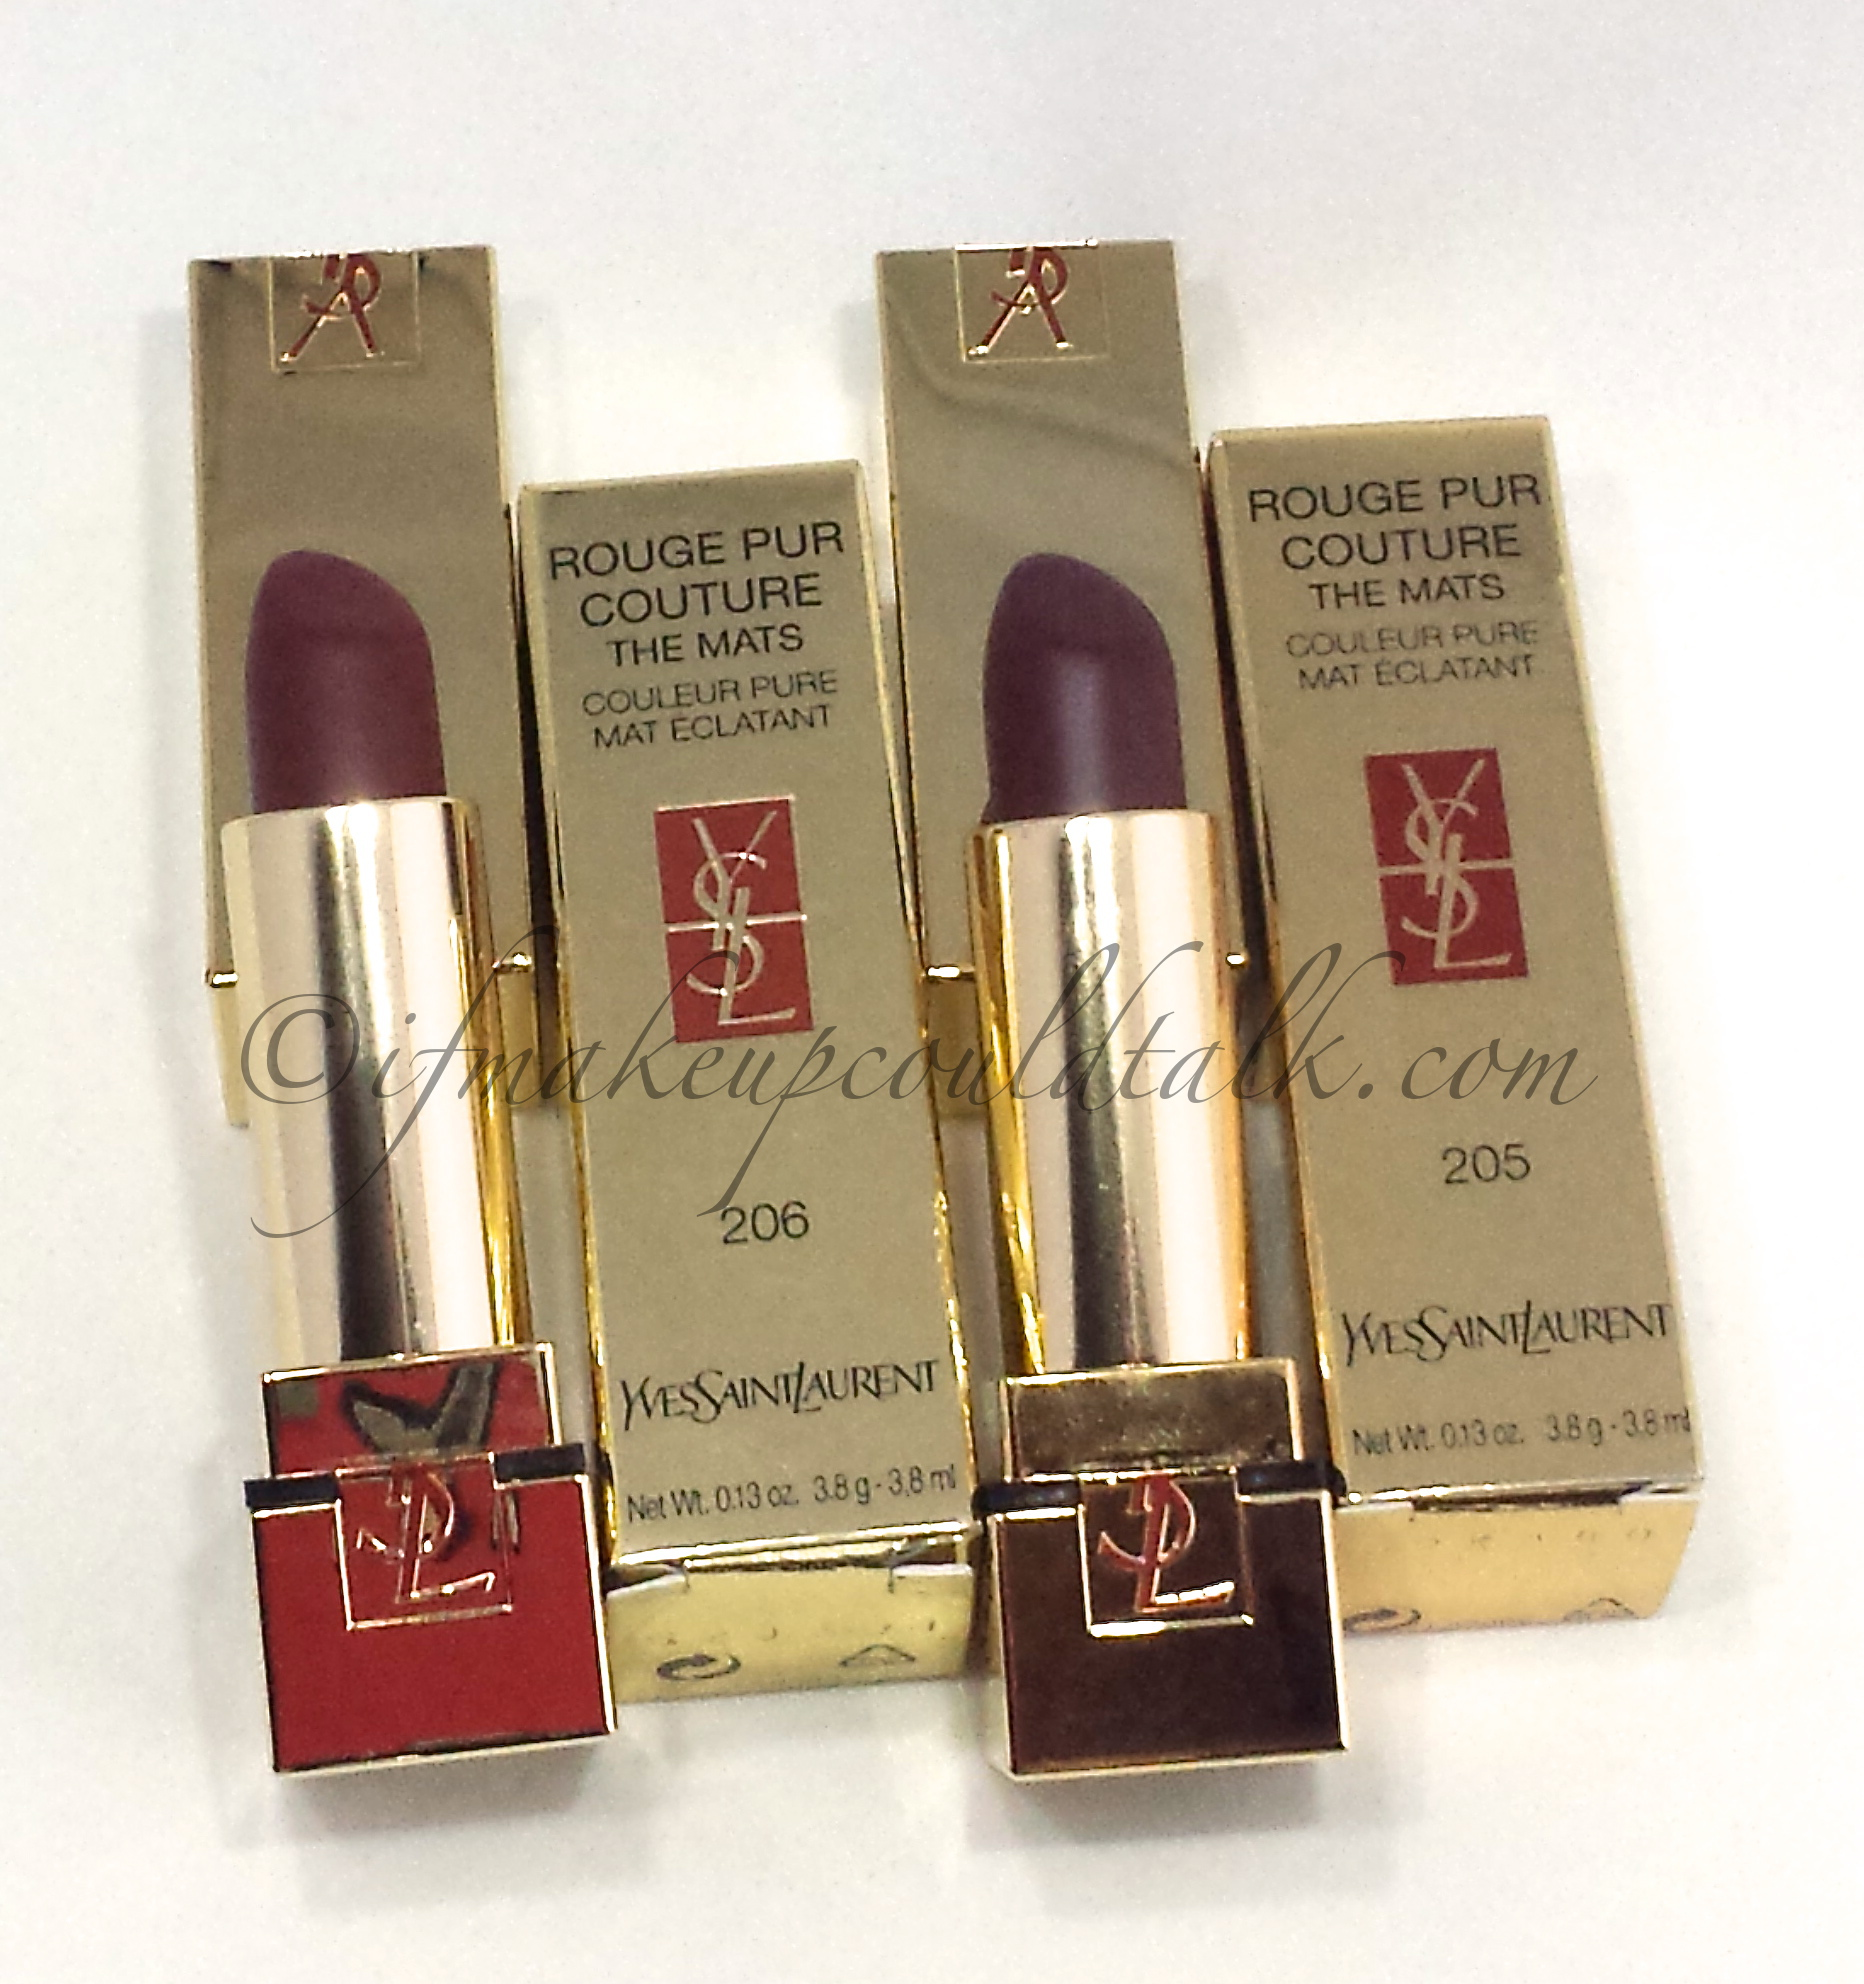 YSL Rouge Pur Couture The Mats 206 and 205 review and photos.